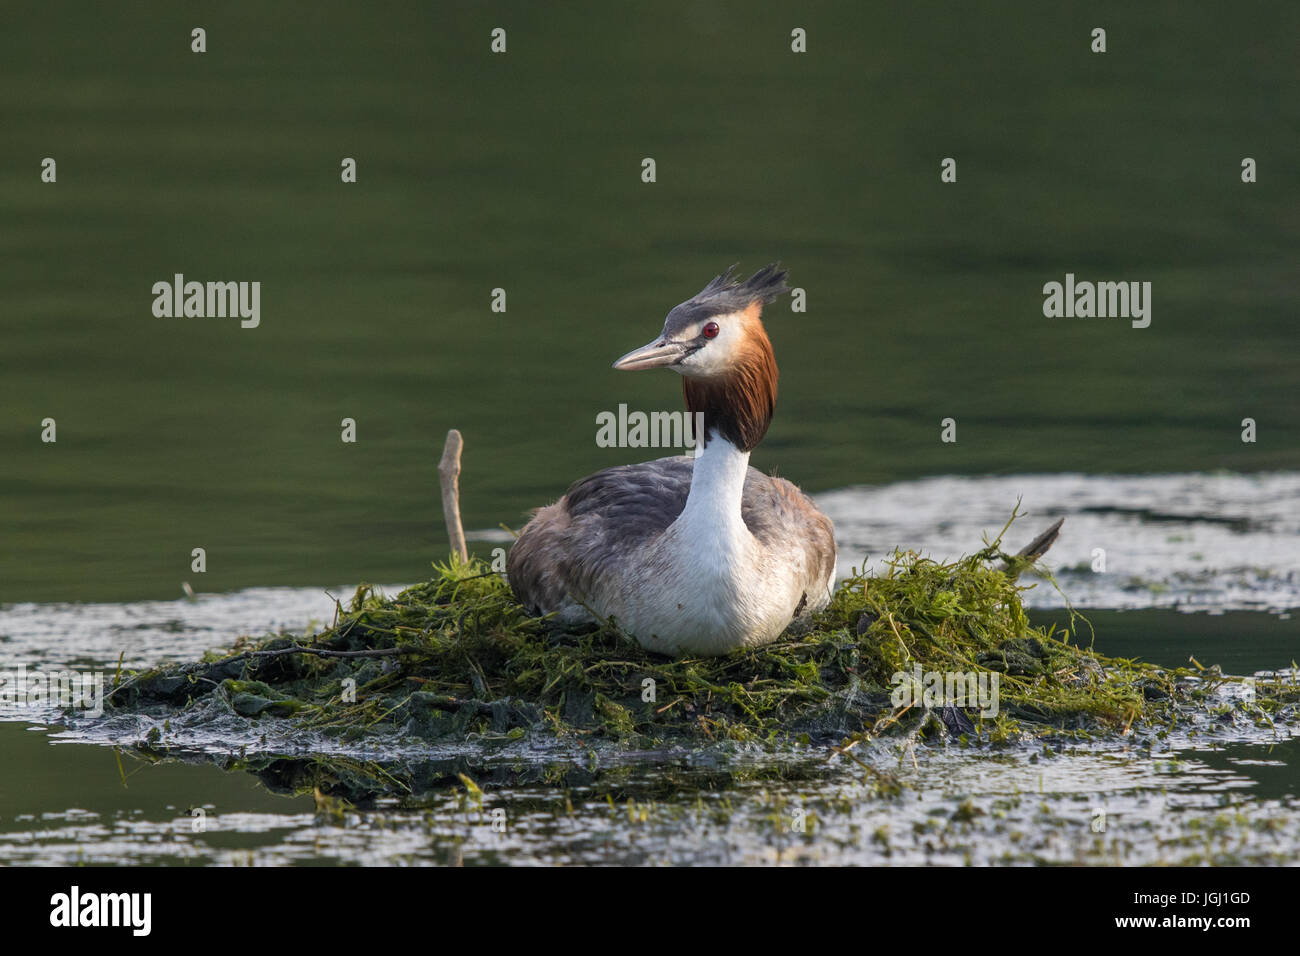 Great Crested Grebe (Podiceps cristatus) on its nest - Stock Image